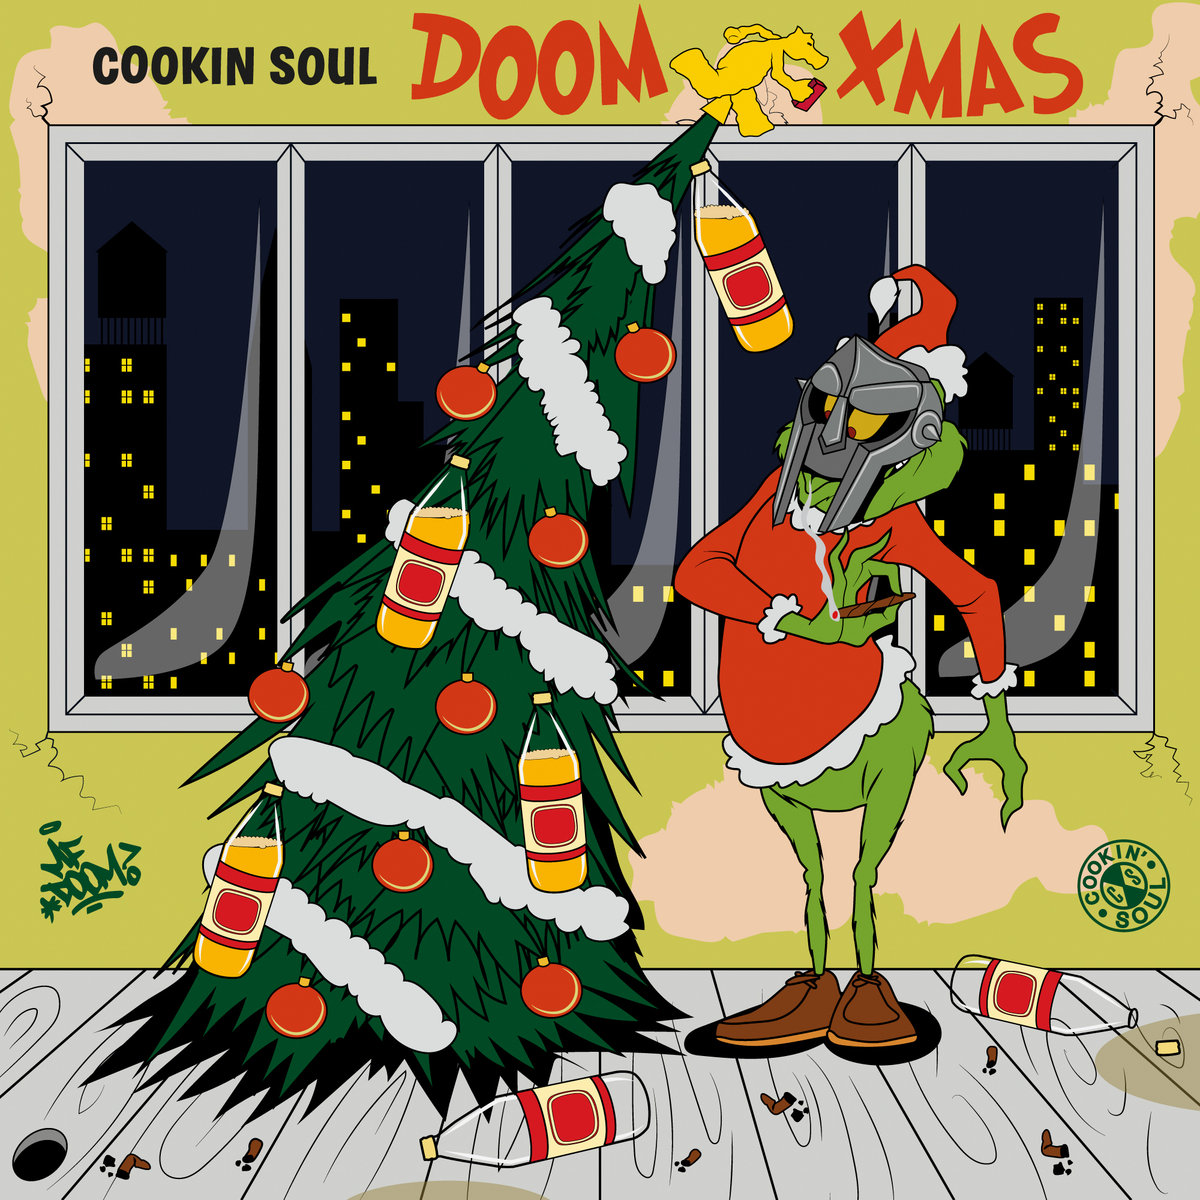 Cookin' Soul – DOOM XMAS (MF DOOM Remixes)